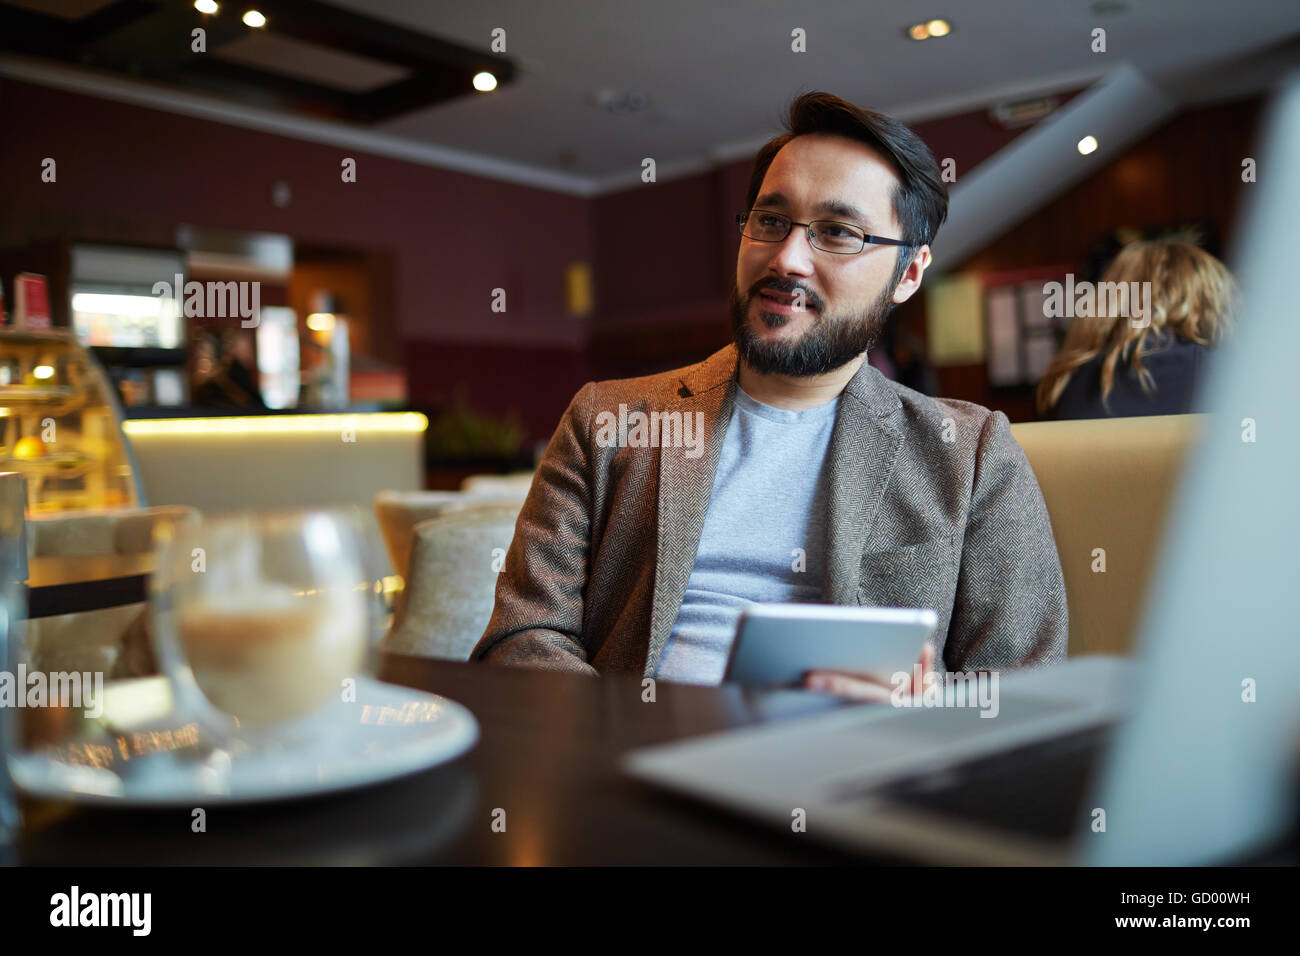 Homme au café Photo Stock